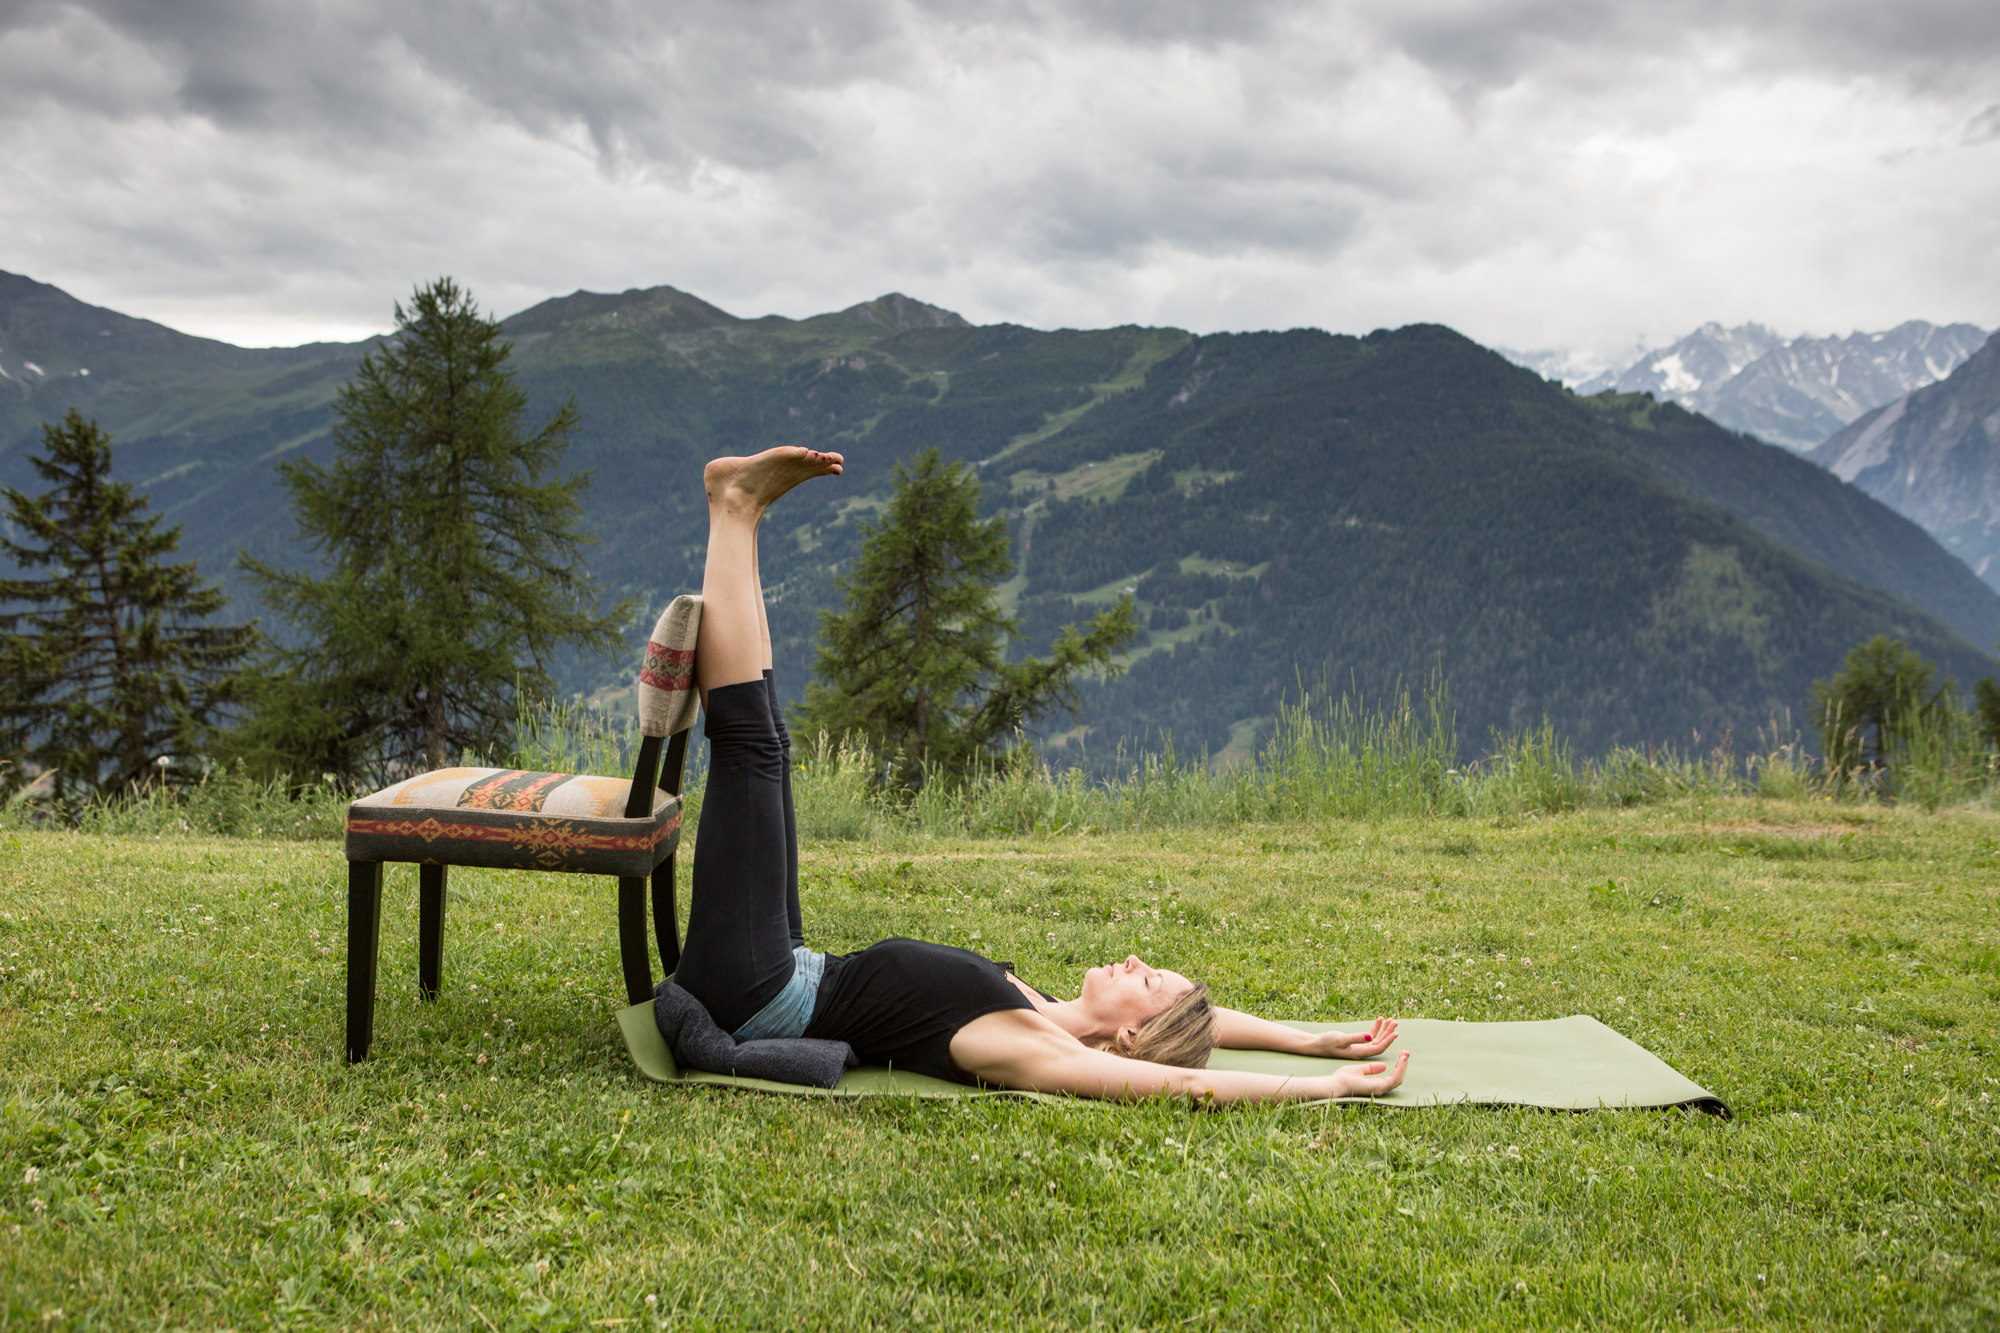 10 Inverted Lake posture (Hands above head)